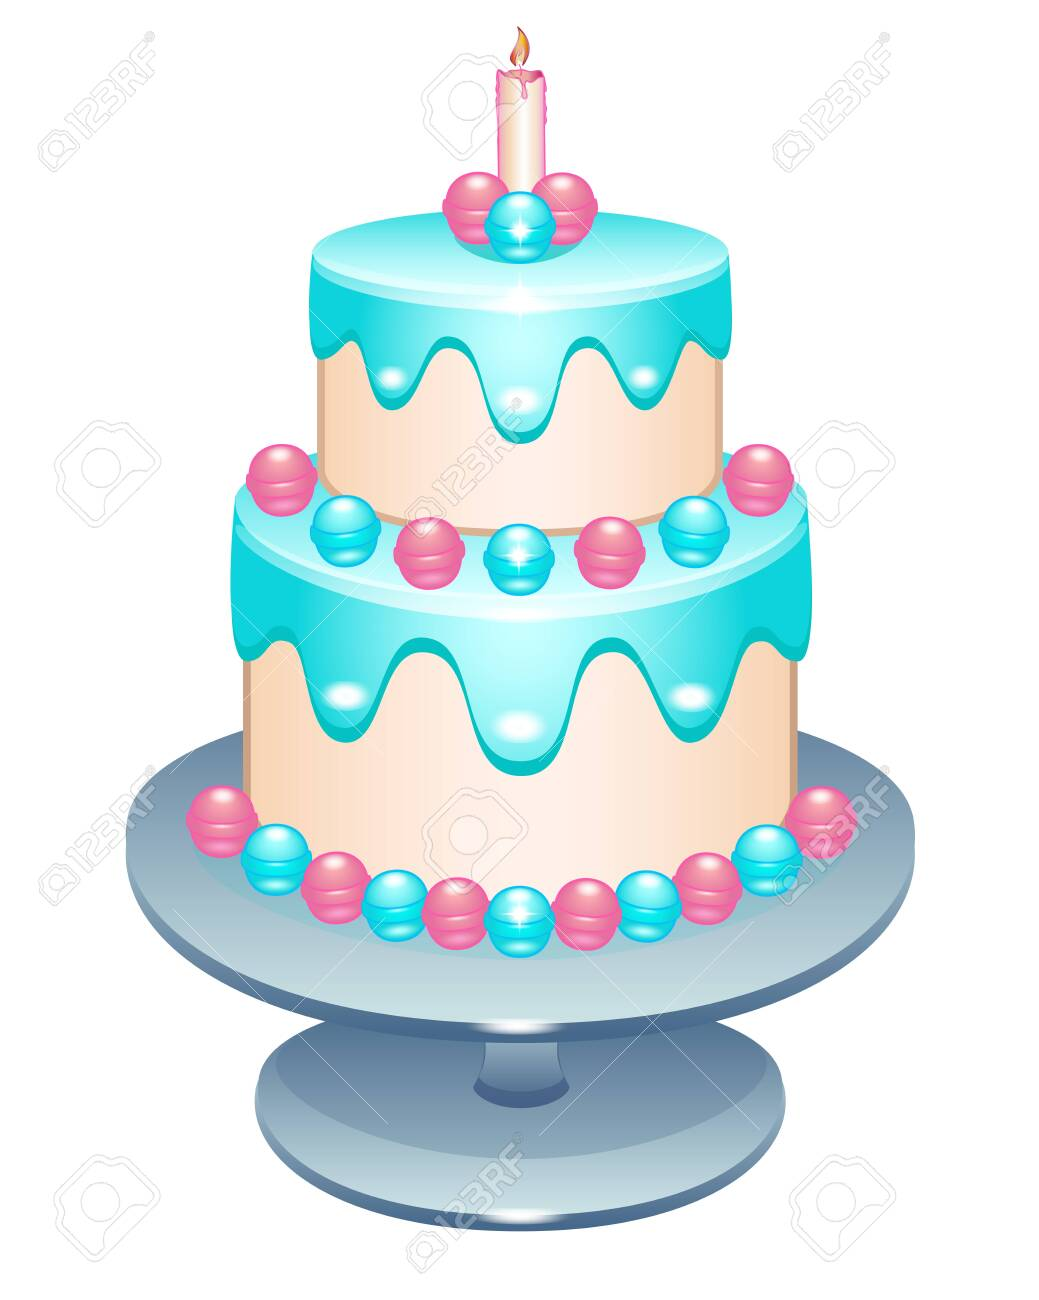 Pleasant Cake Two Tier Birthday Cake With A Candle On A Stand Cake Funny Birthday Cards Online Alyptdamsfinfo